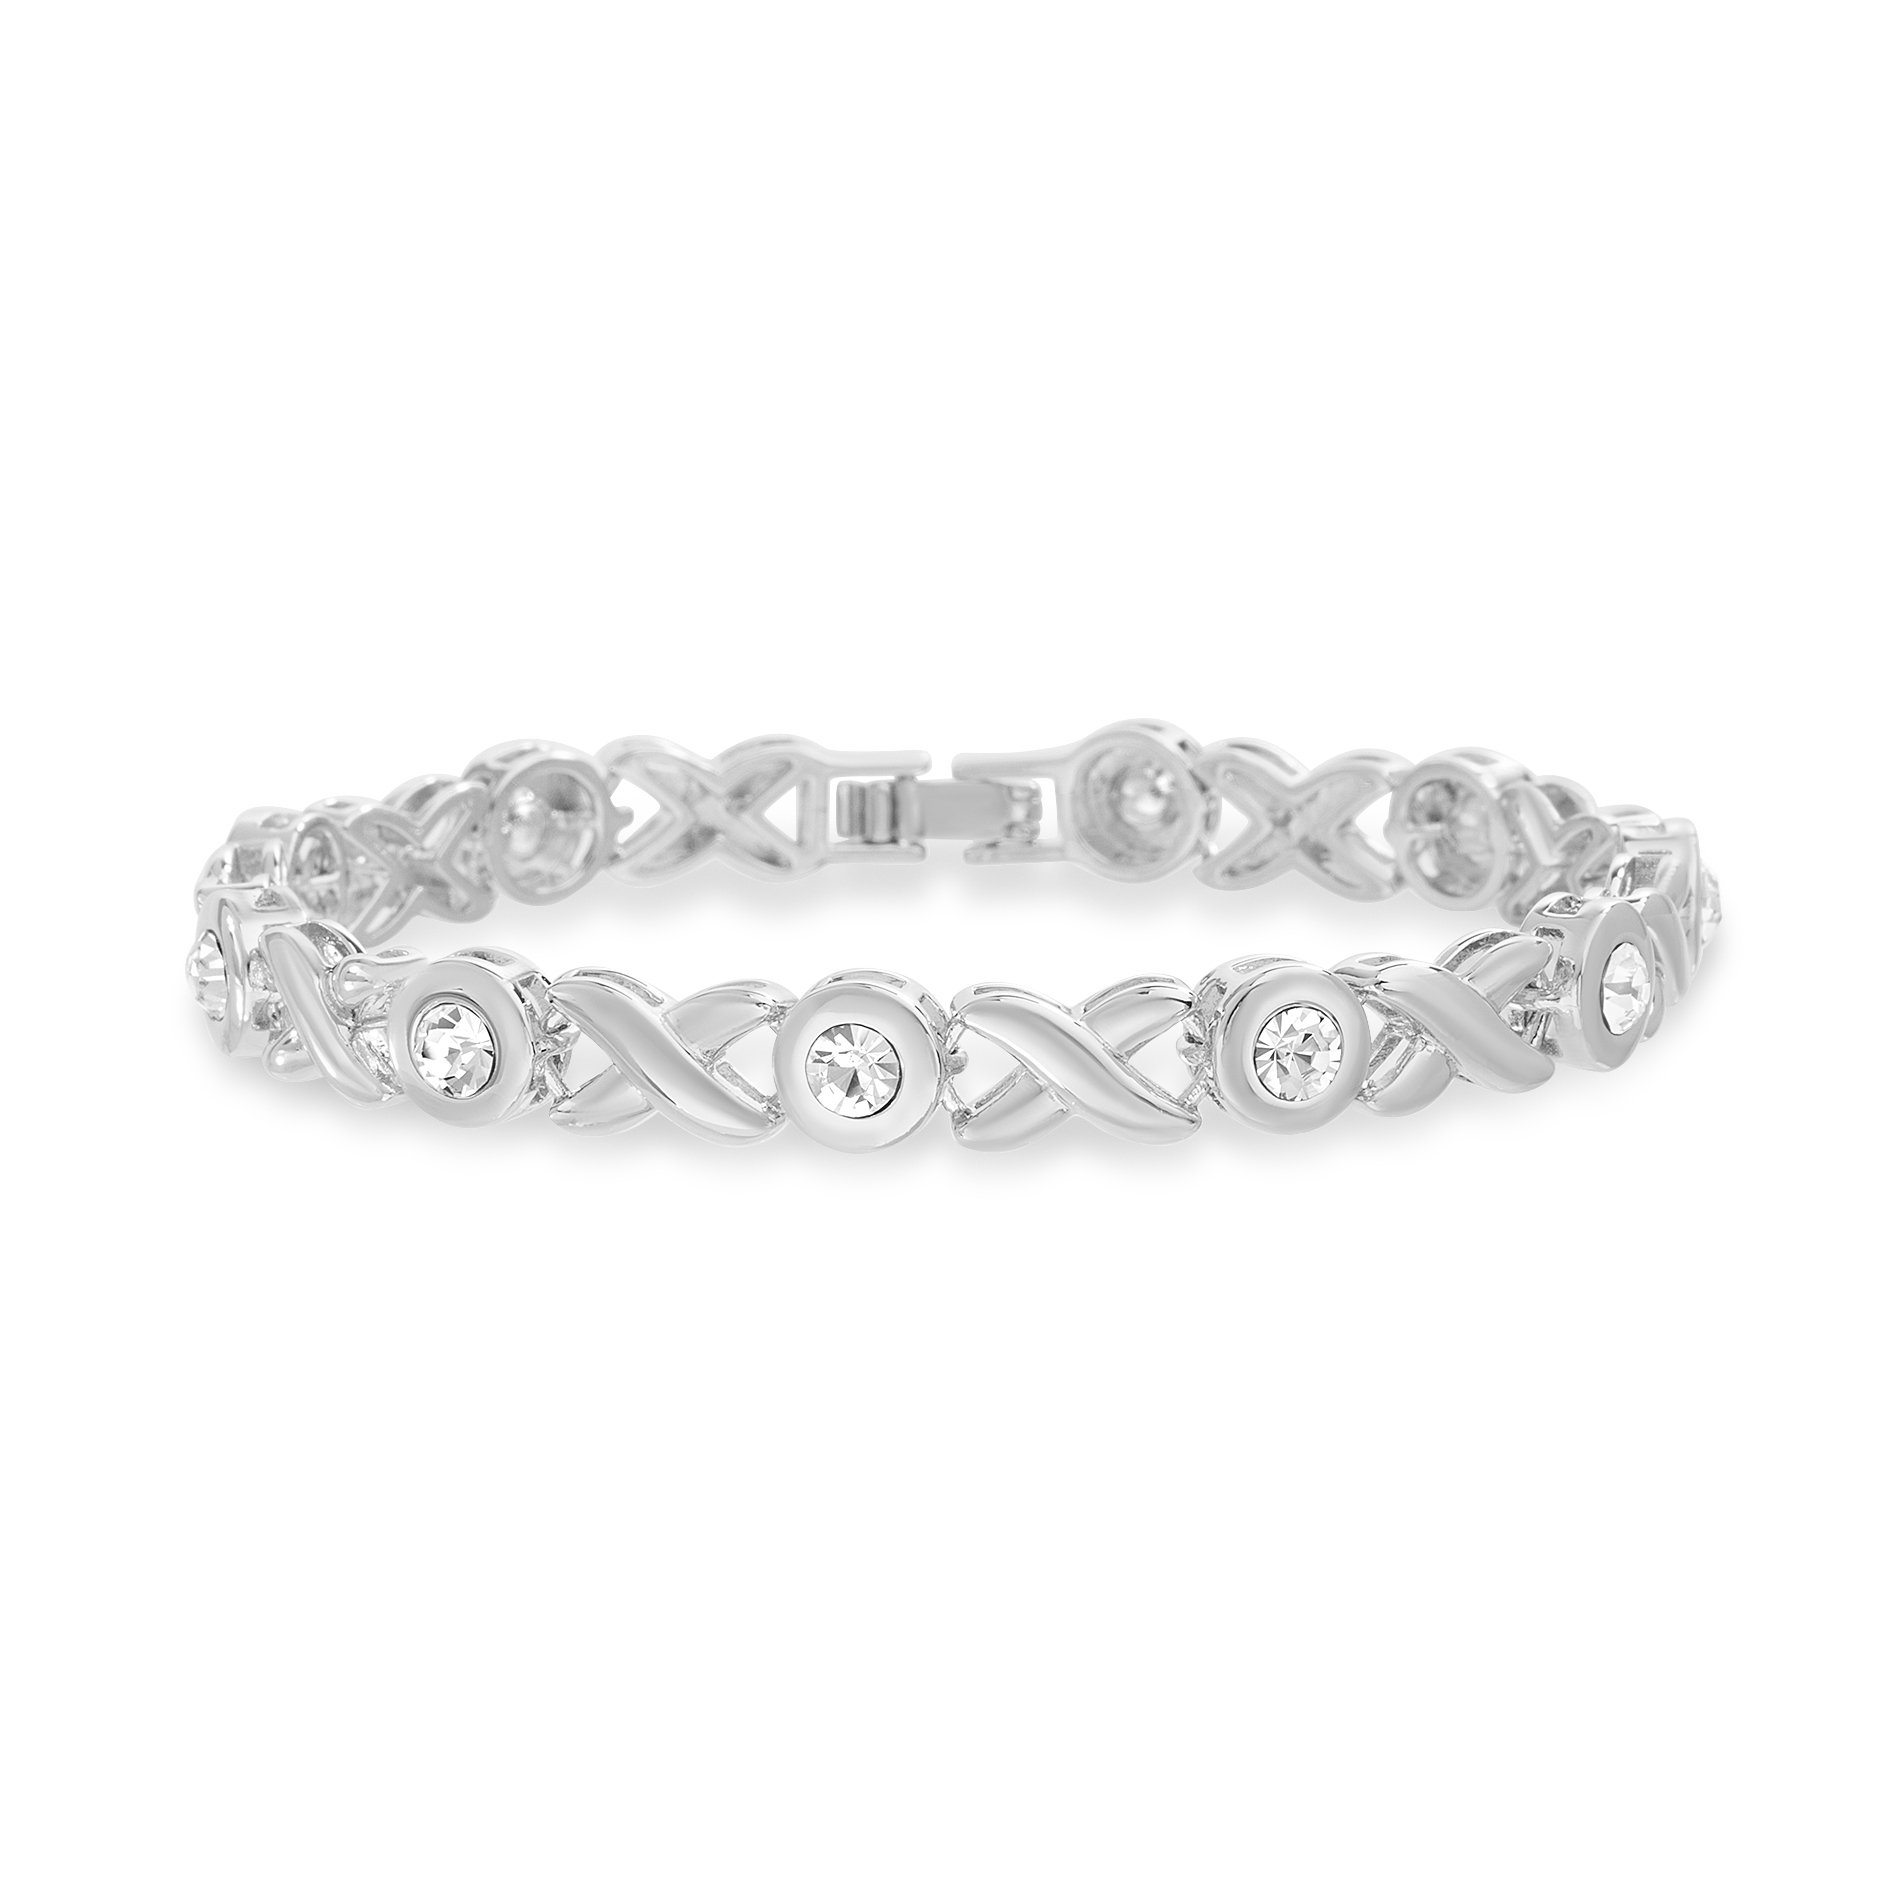 Devin Rose Womens X and O Style Tennis Bracelet Made With Swarovski Crystals in Rhodium Plated Brass